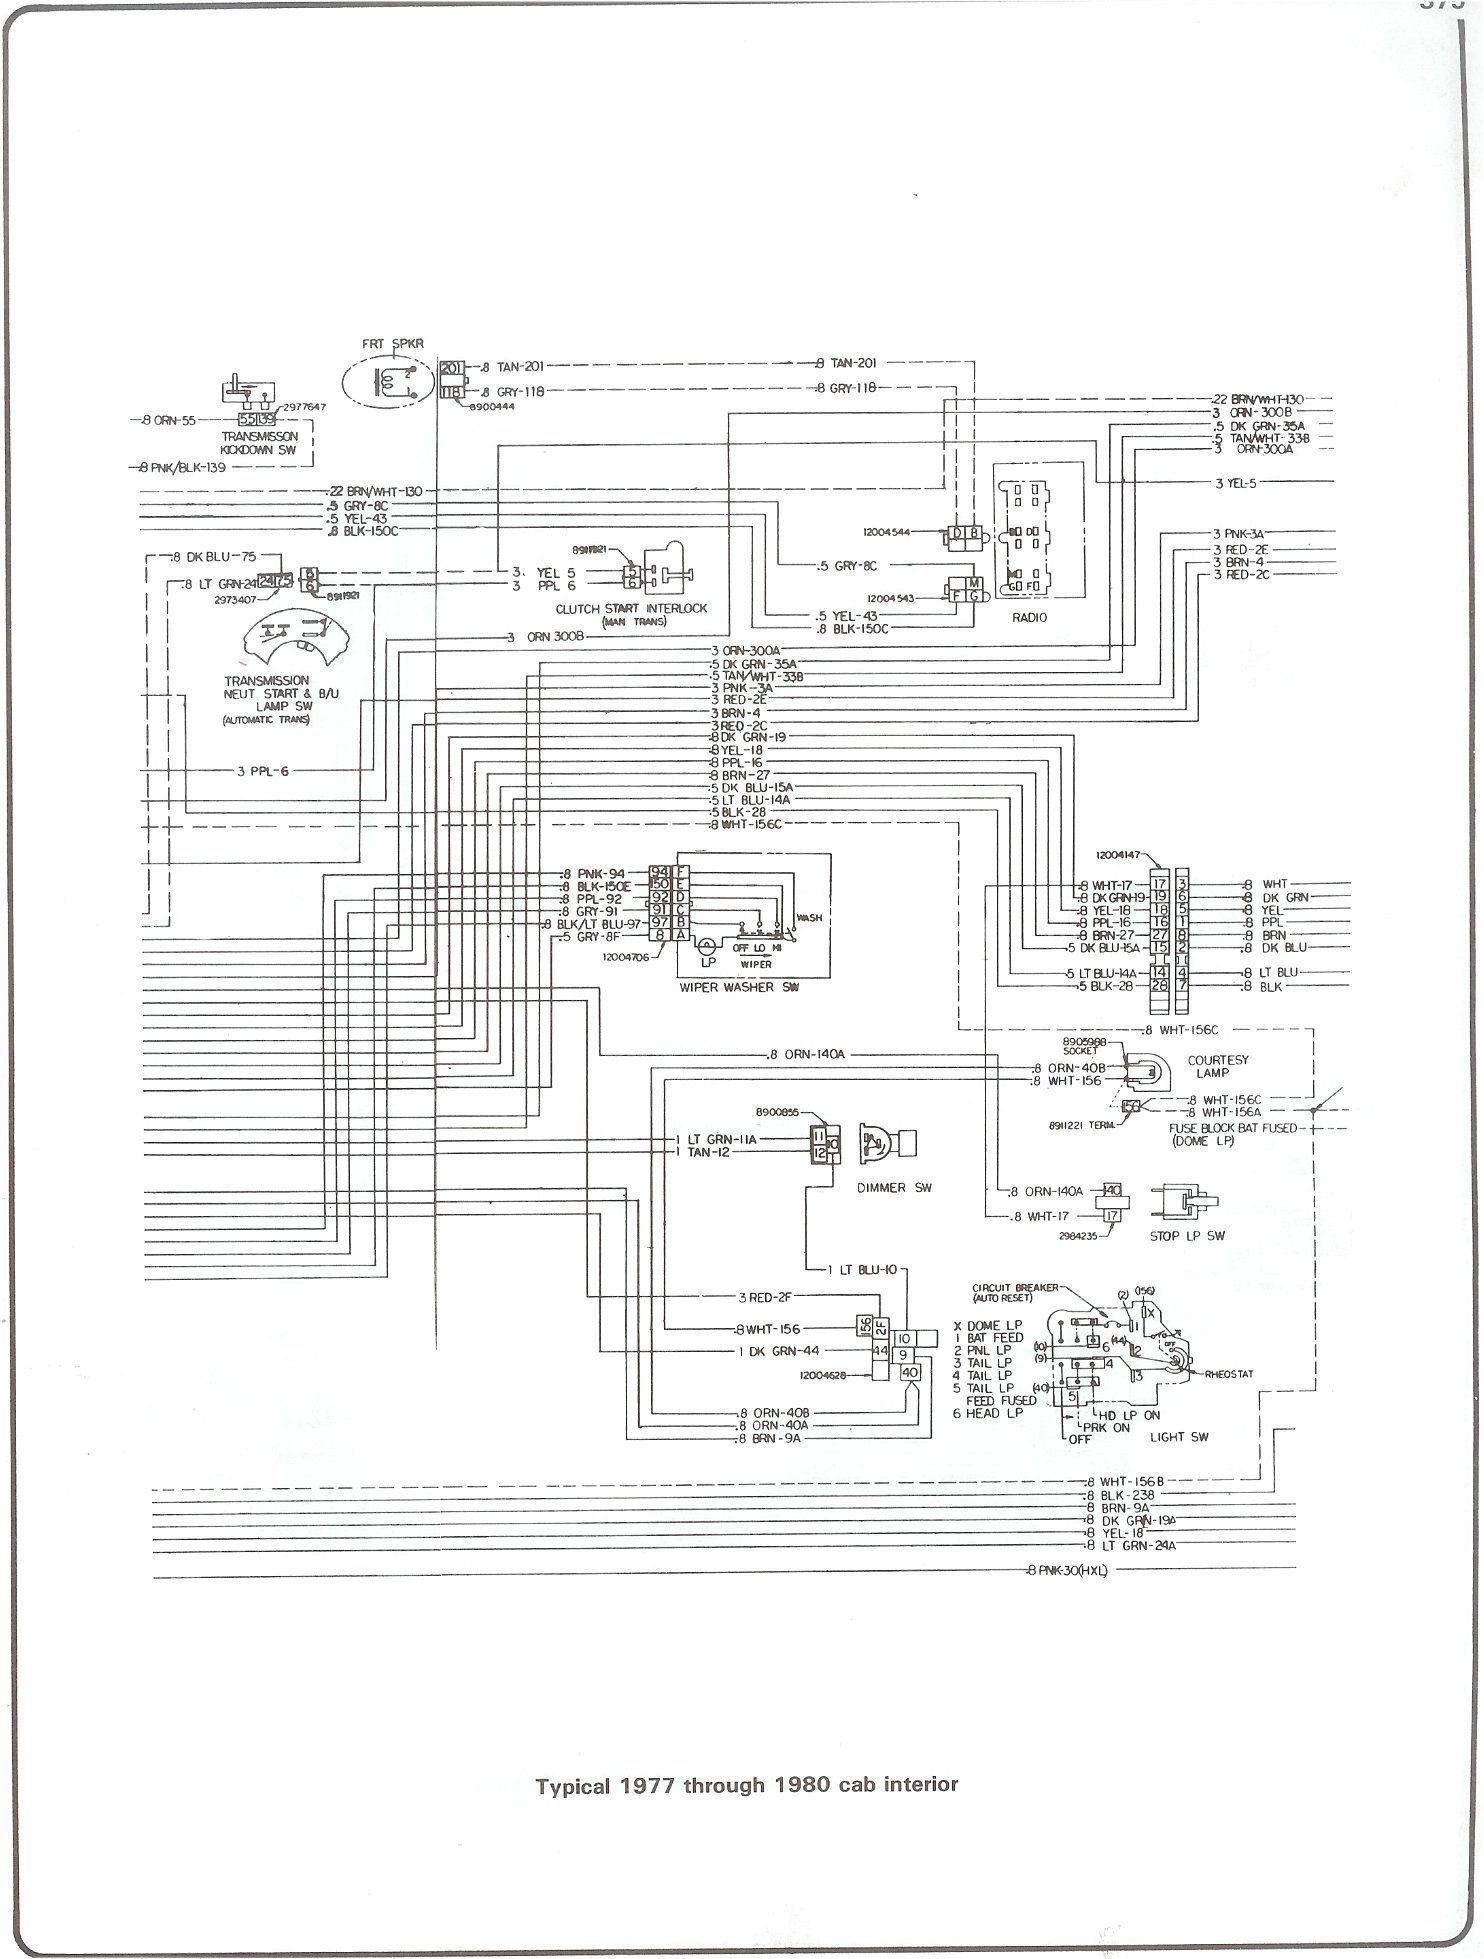 77 80_cab_inter complete 73 87 wiring diagrams 12 Wire Motor Wiring Diagram at mifinder.co